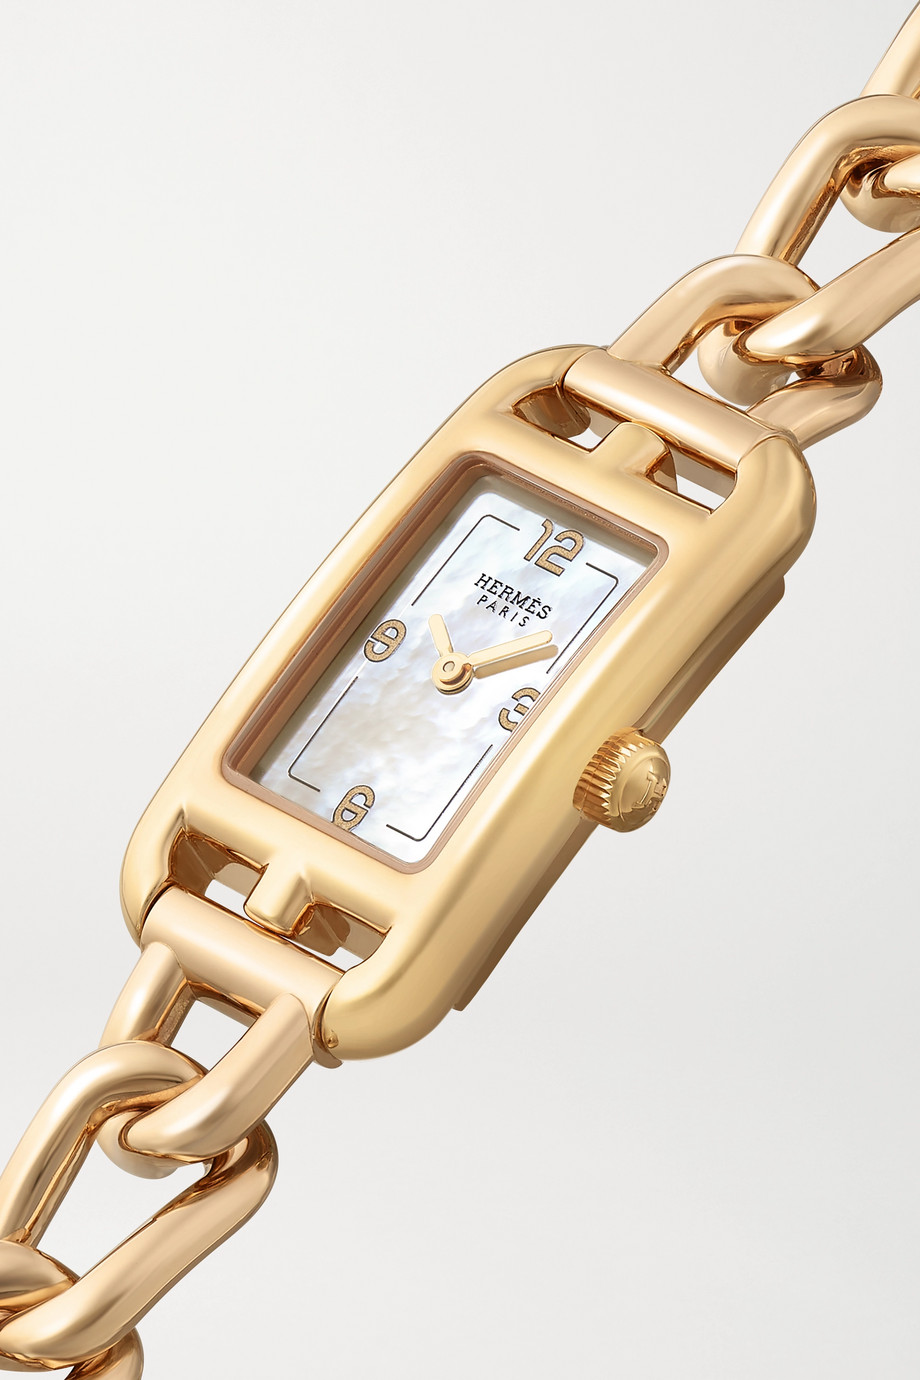 Hermès Timepieces Nantucket 17mm very small 18-karat rose gold mother-of-pearl watch